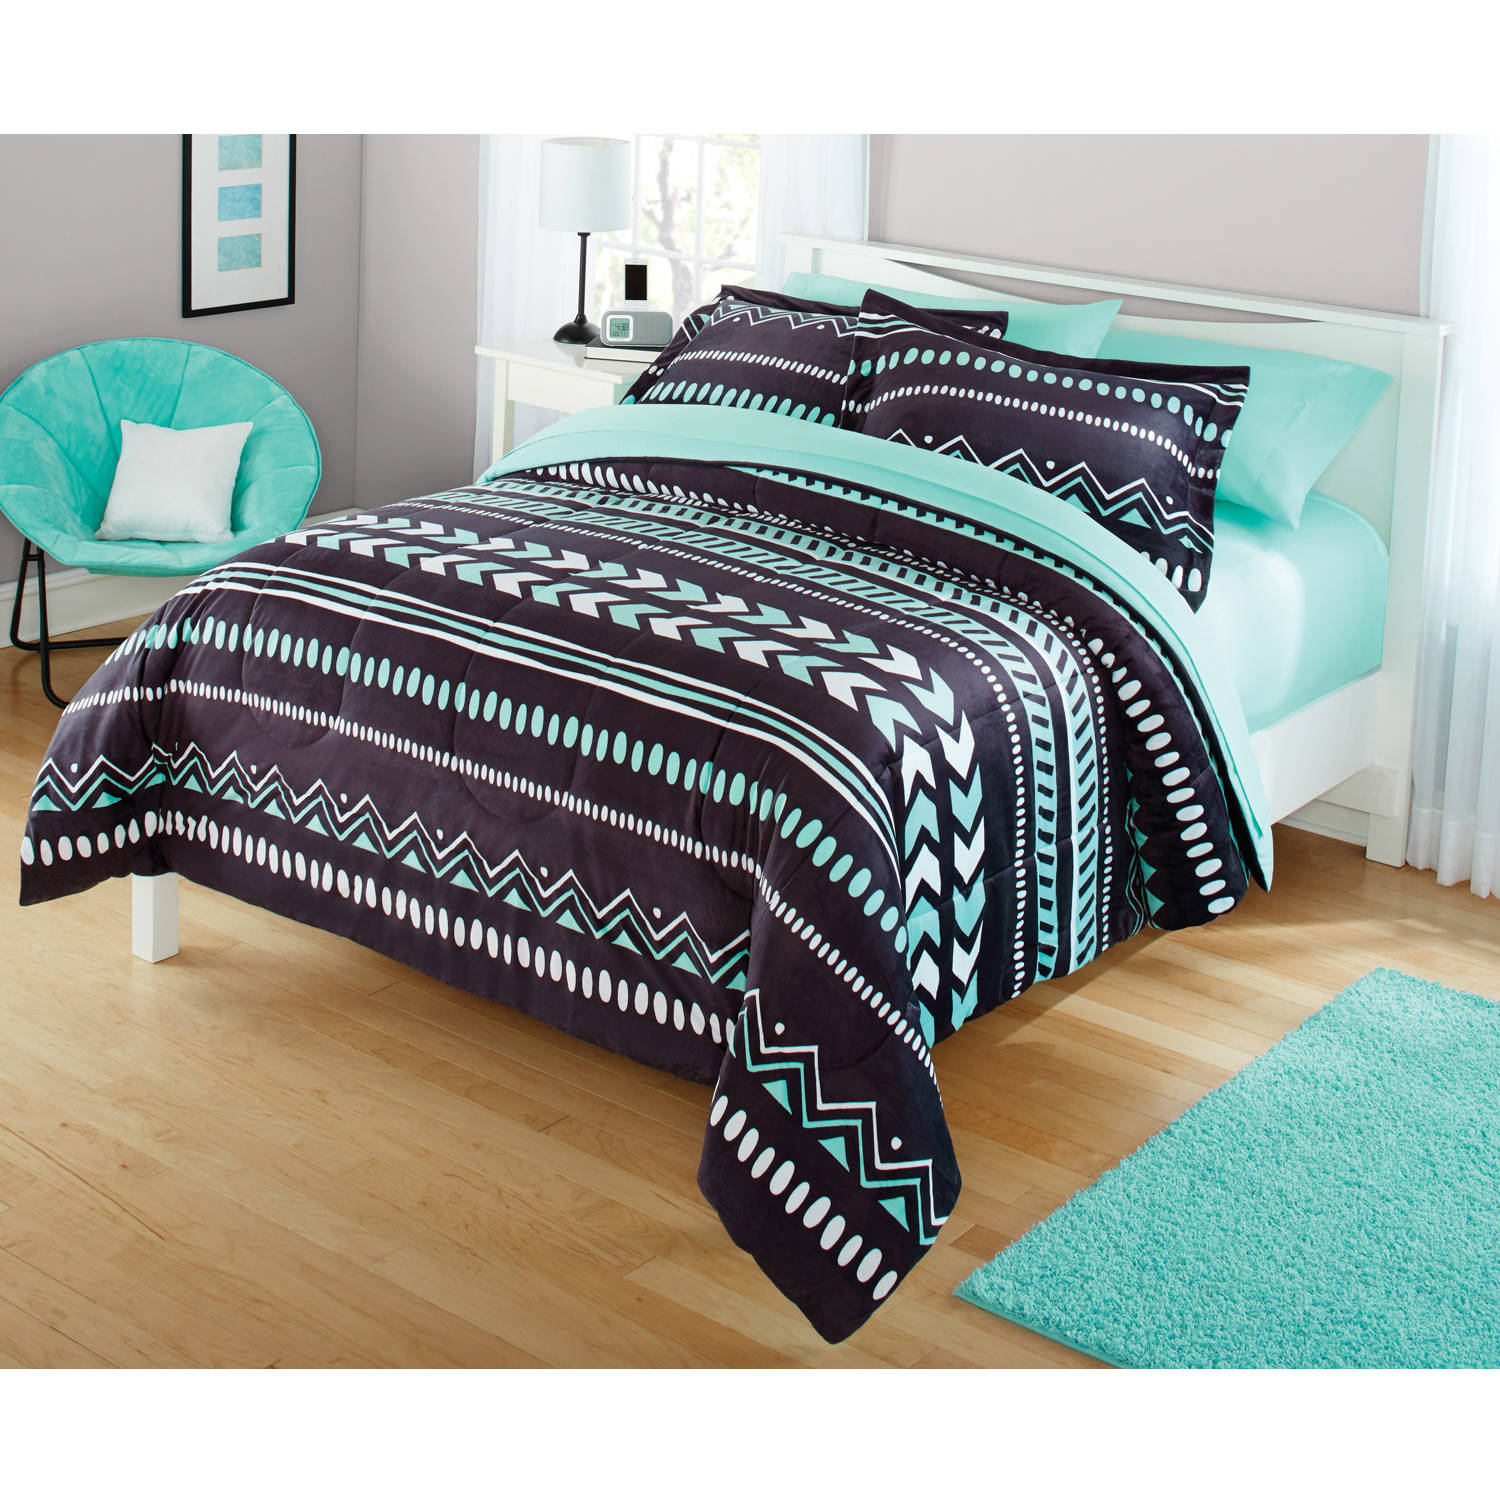 Design Comforters For Teens teens bedding walmart com your zone mint grey tribal comforter set